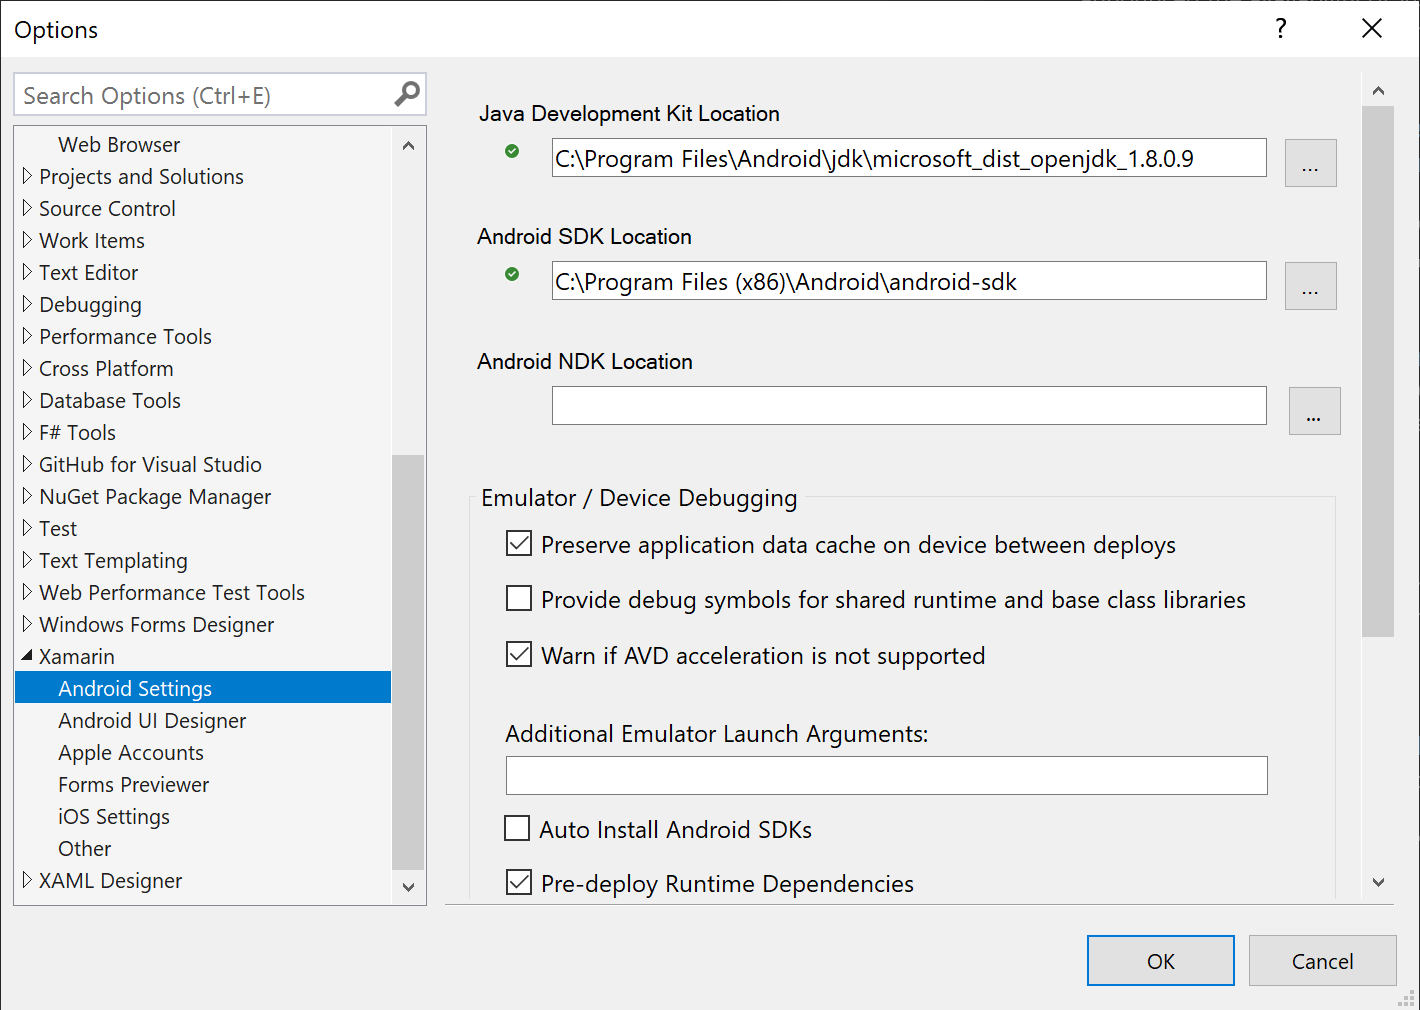 Visual Studio Android settings